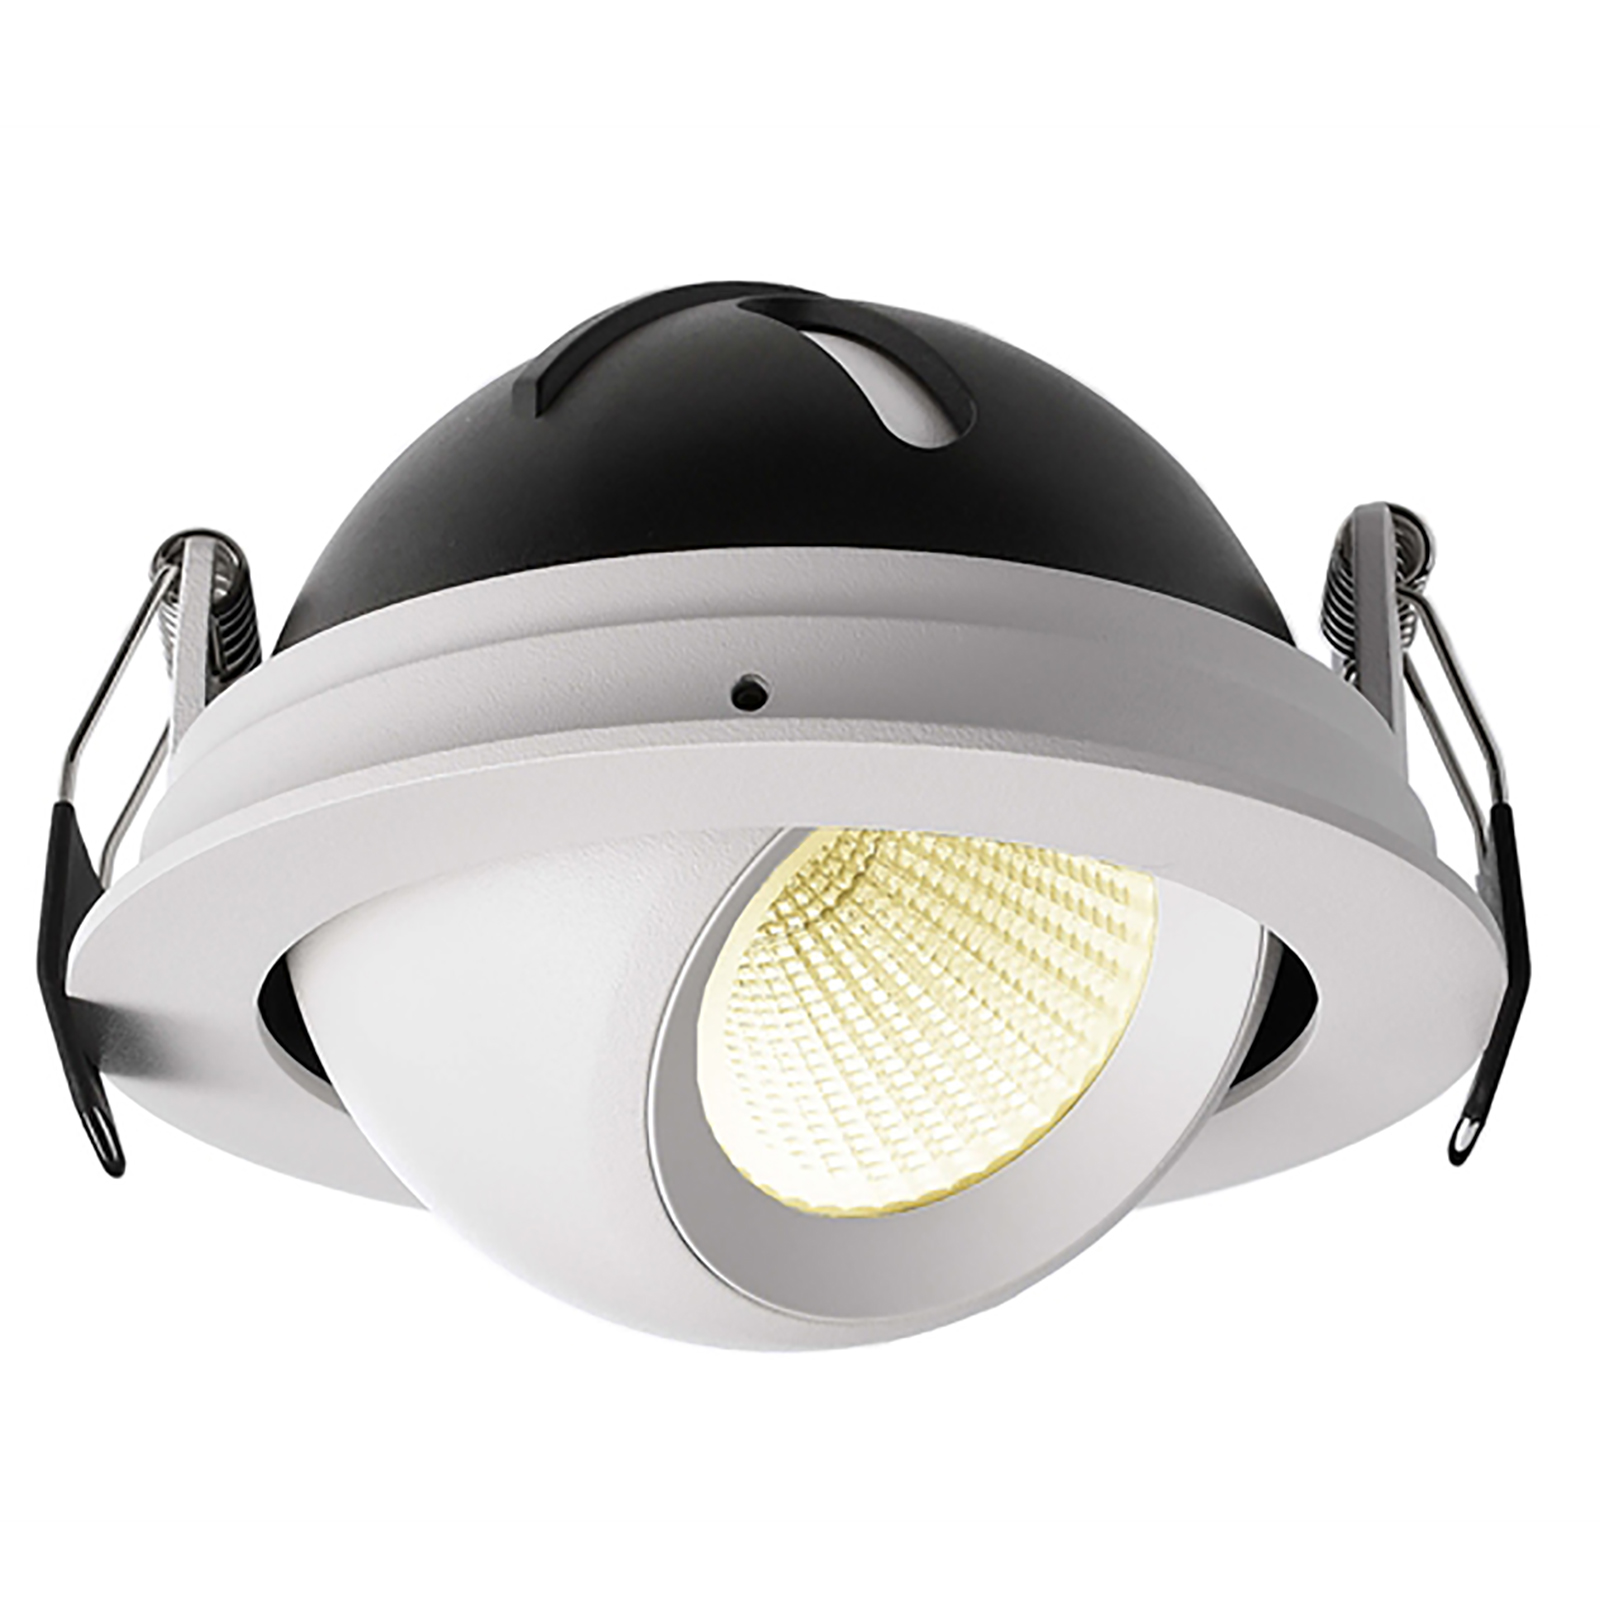 LED spotlight 9W recessed 10cm tilting adjustable spots dimmable showcase shop